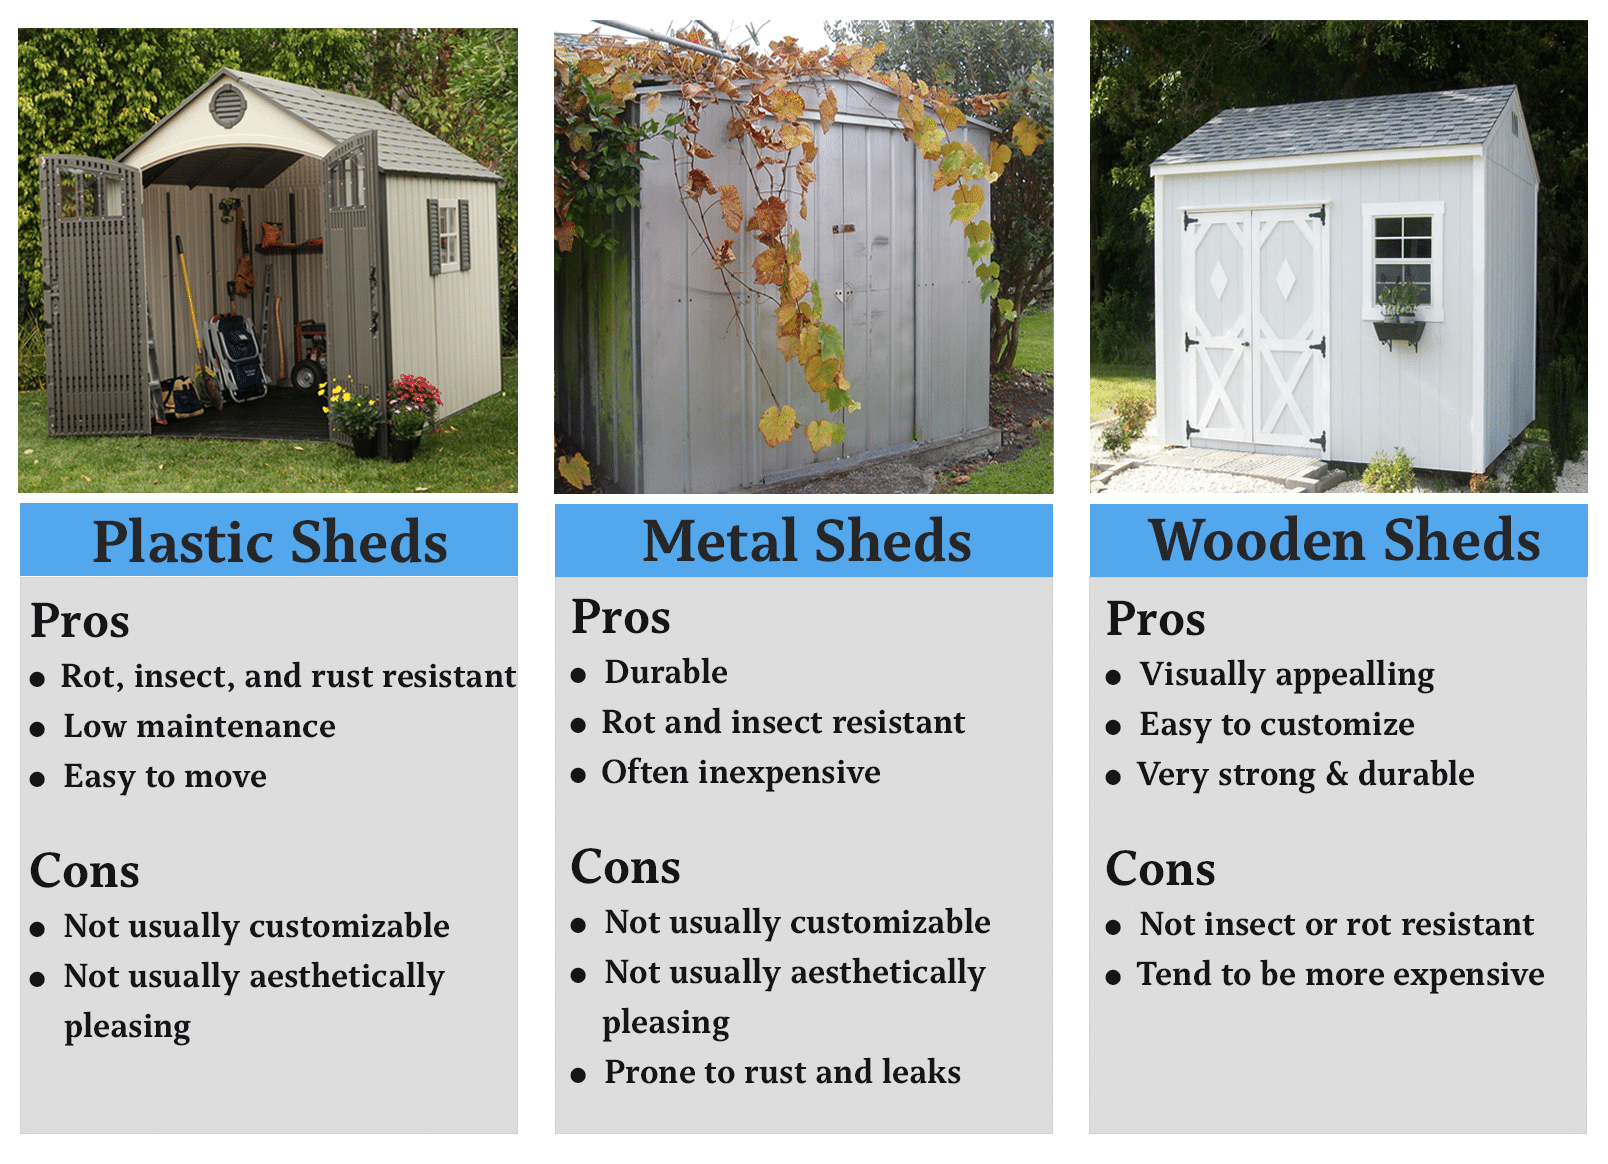 pros and cons of wood, metal, and plastic sheds